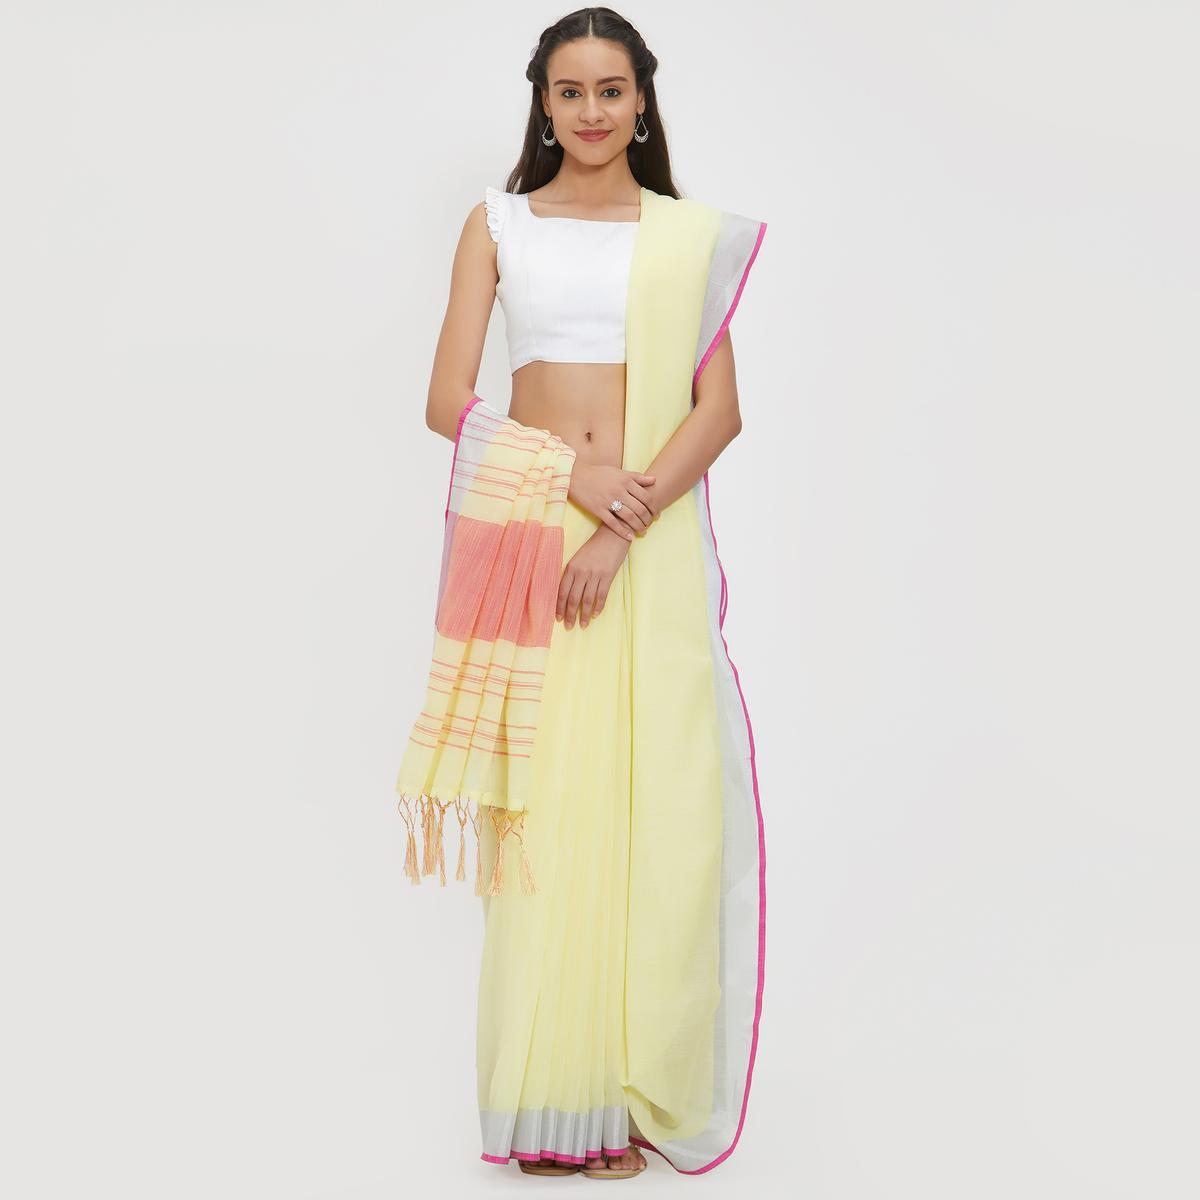 Blooming Yellow Colored Casual Wear Linen Saree With 2 Blouse Pieces